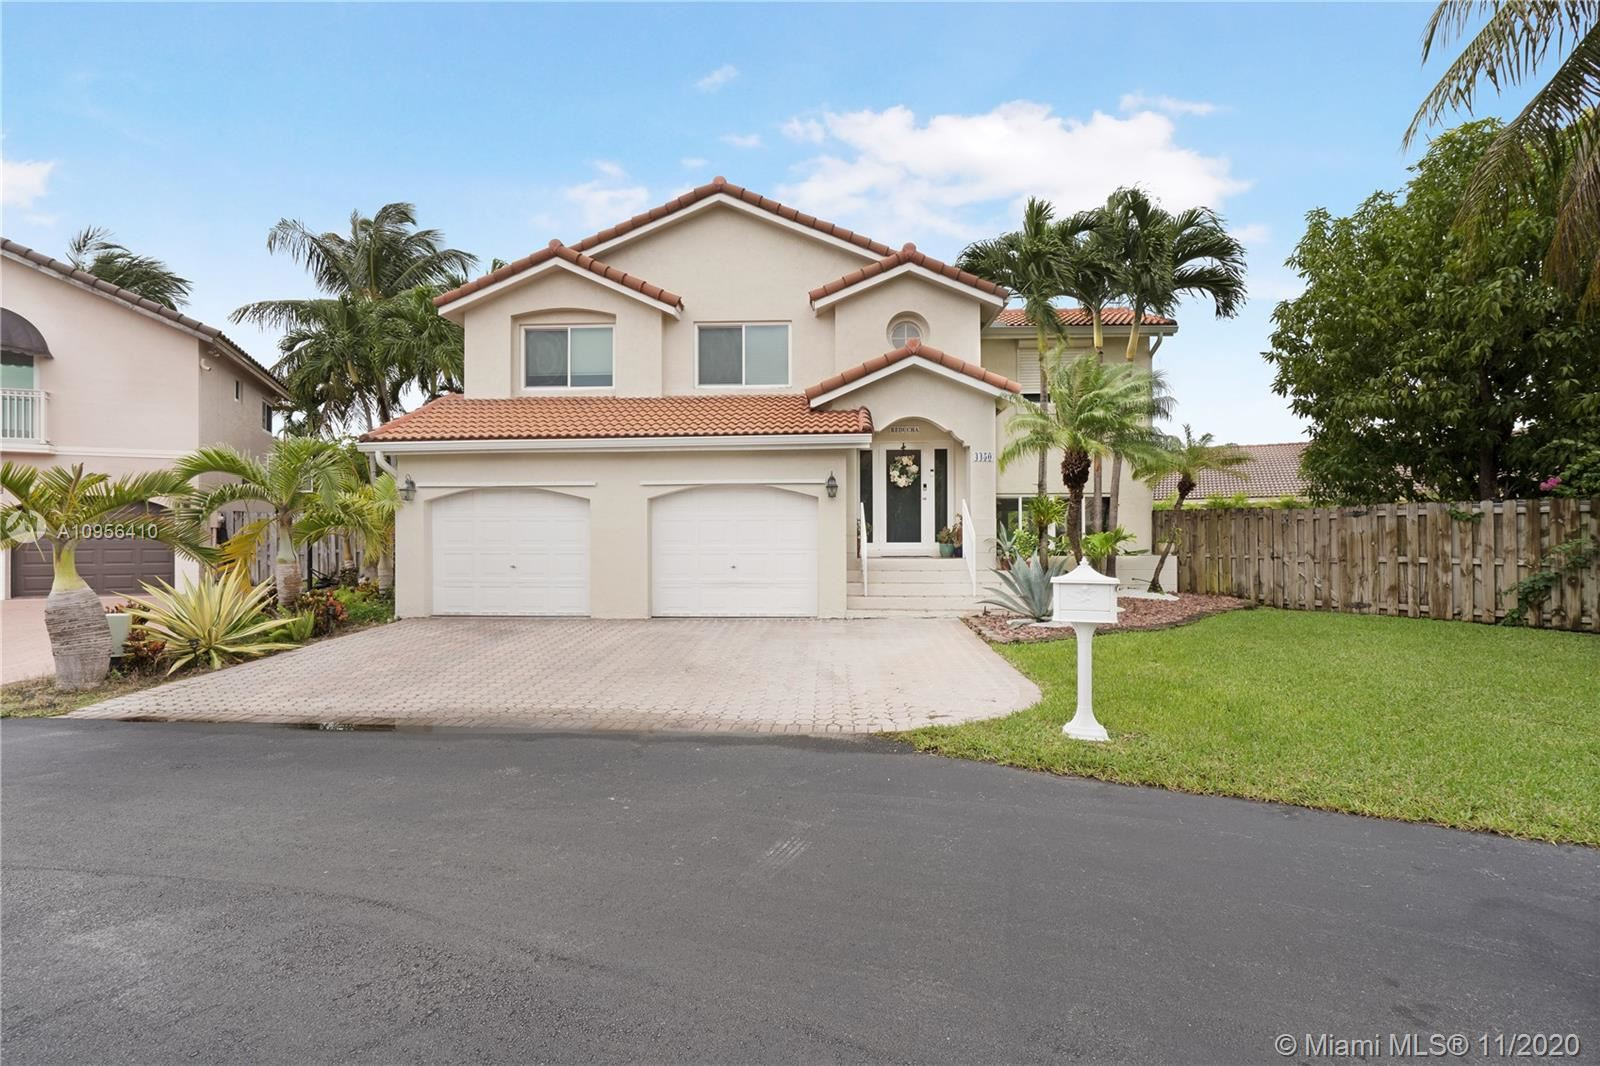 4450 SW 154th Ave, Miami, FL 33185 - #: A10956410